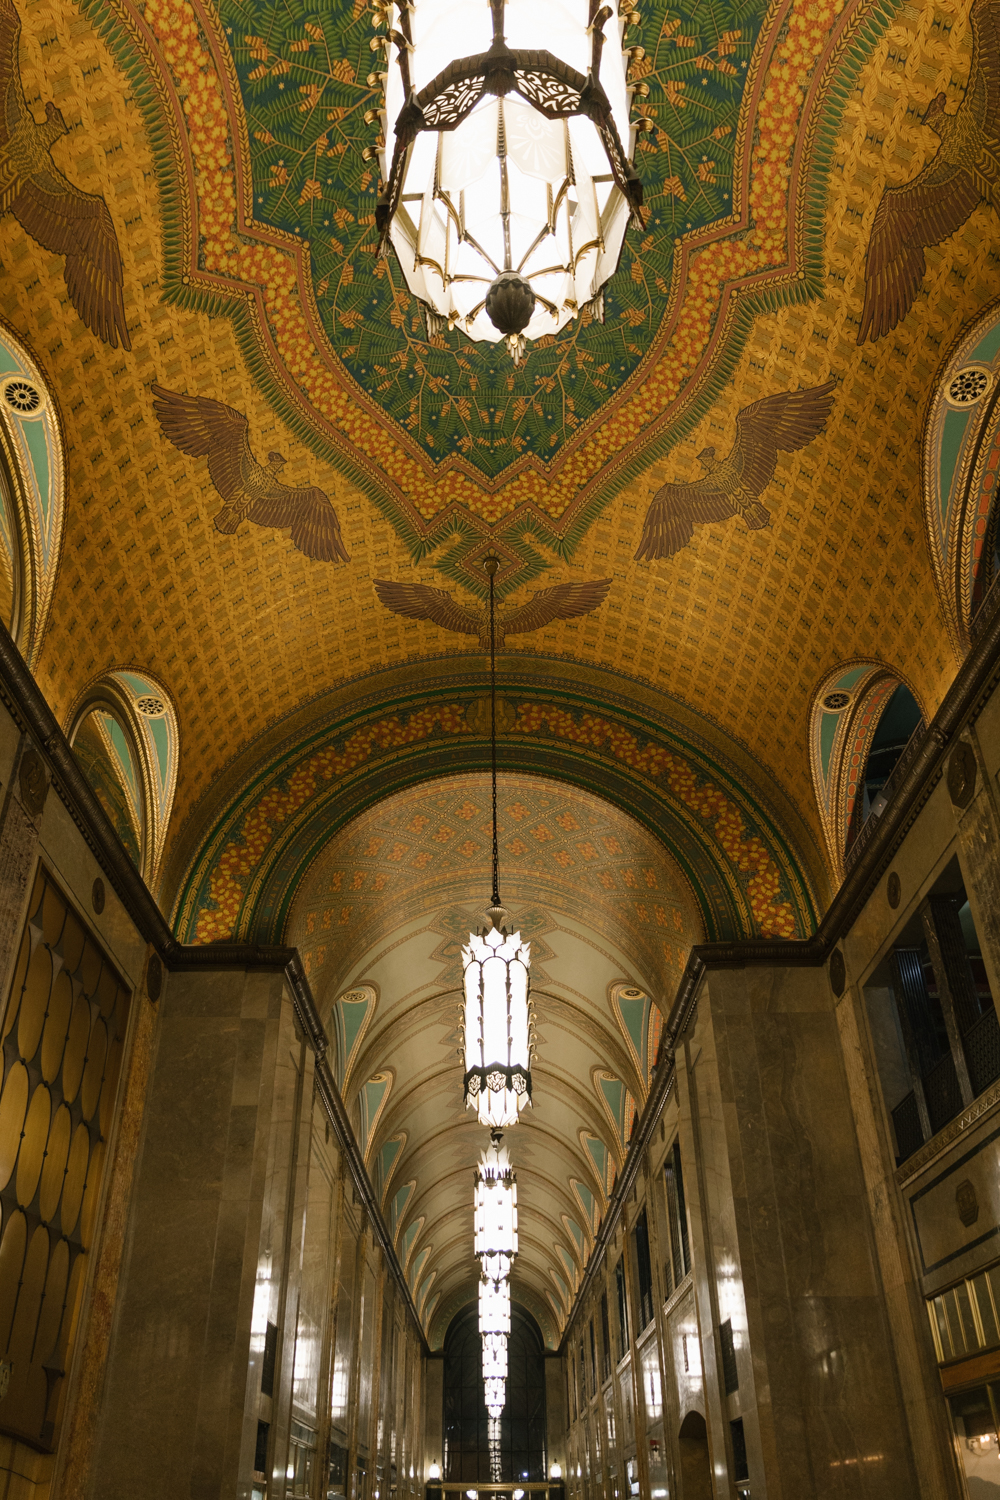 The Fisher Building is a landmark skyscraper located in the heart of the New Center area of Detroit, Michigan.